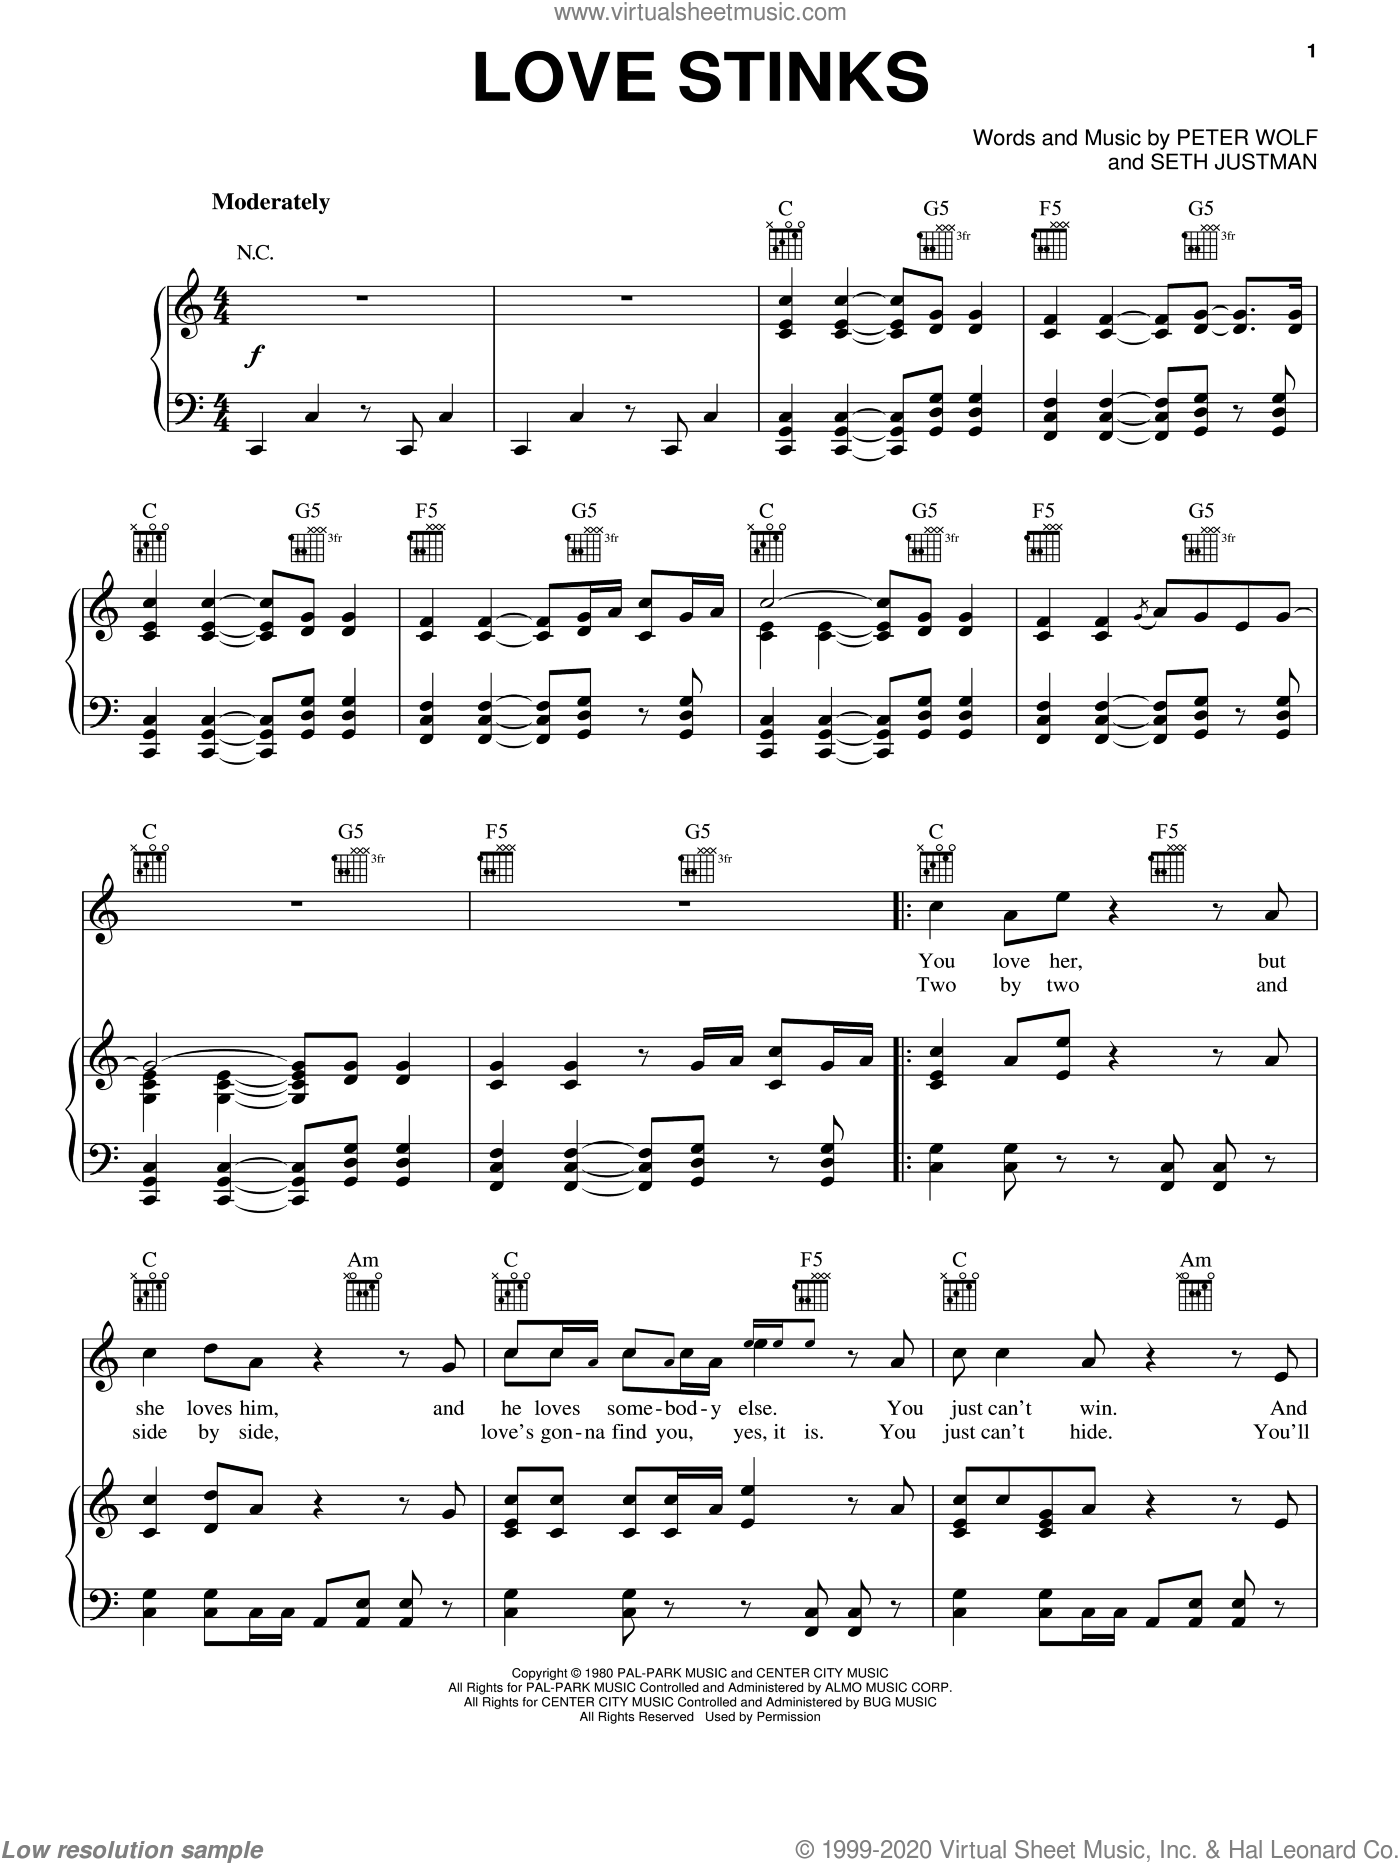 Love Stinks sheet music for voice, piano or guitar by Seth Justman, J. Geils Band and Peter Wolf. Score Image Preview.